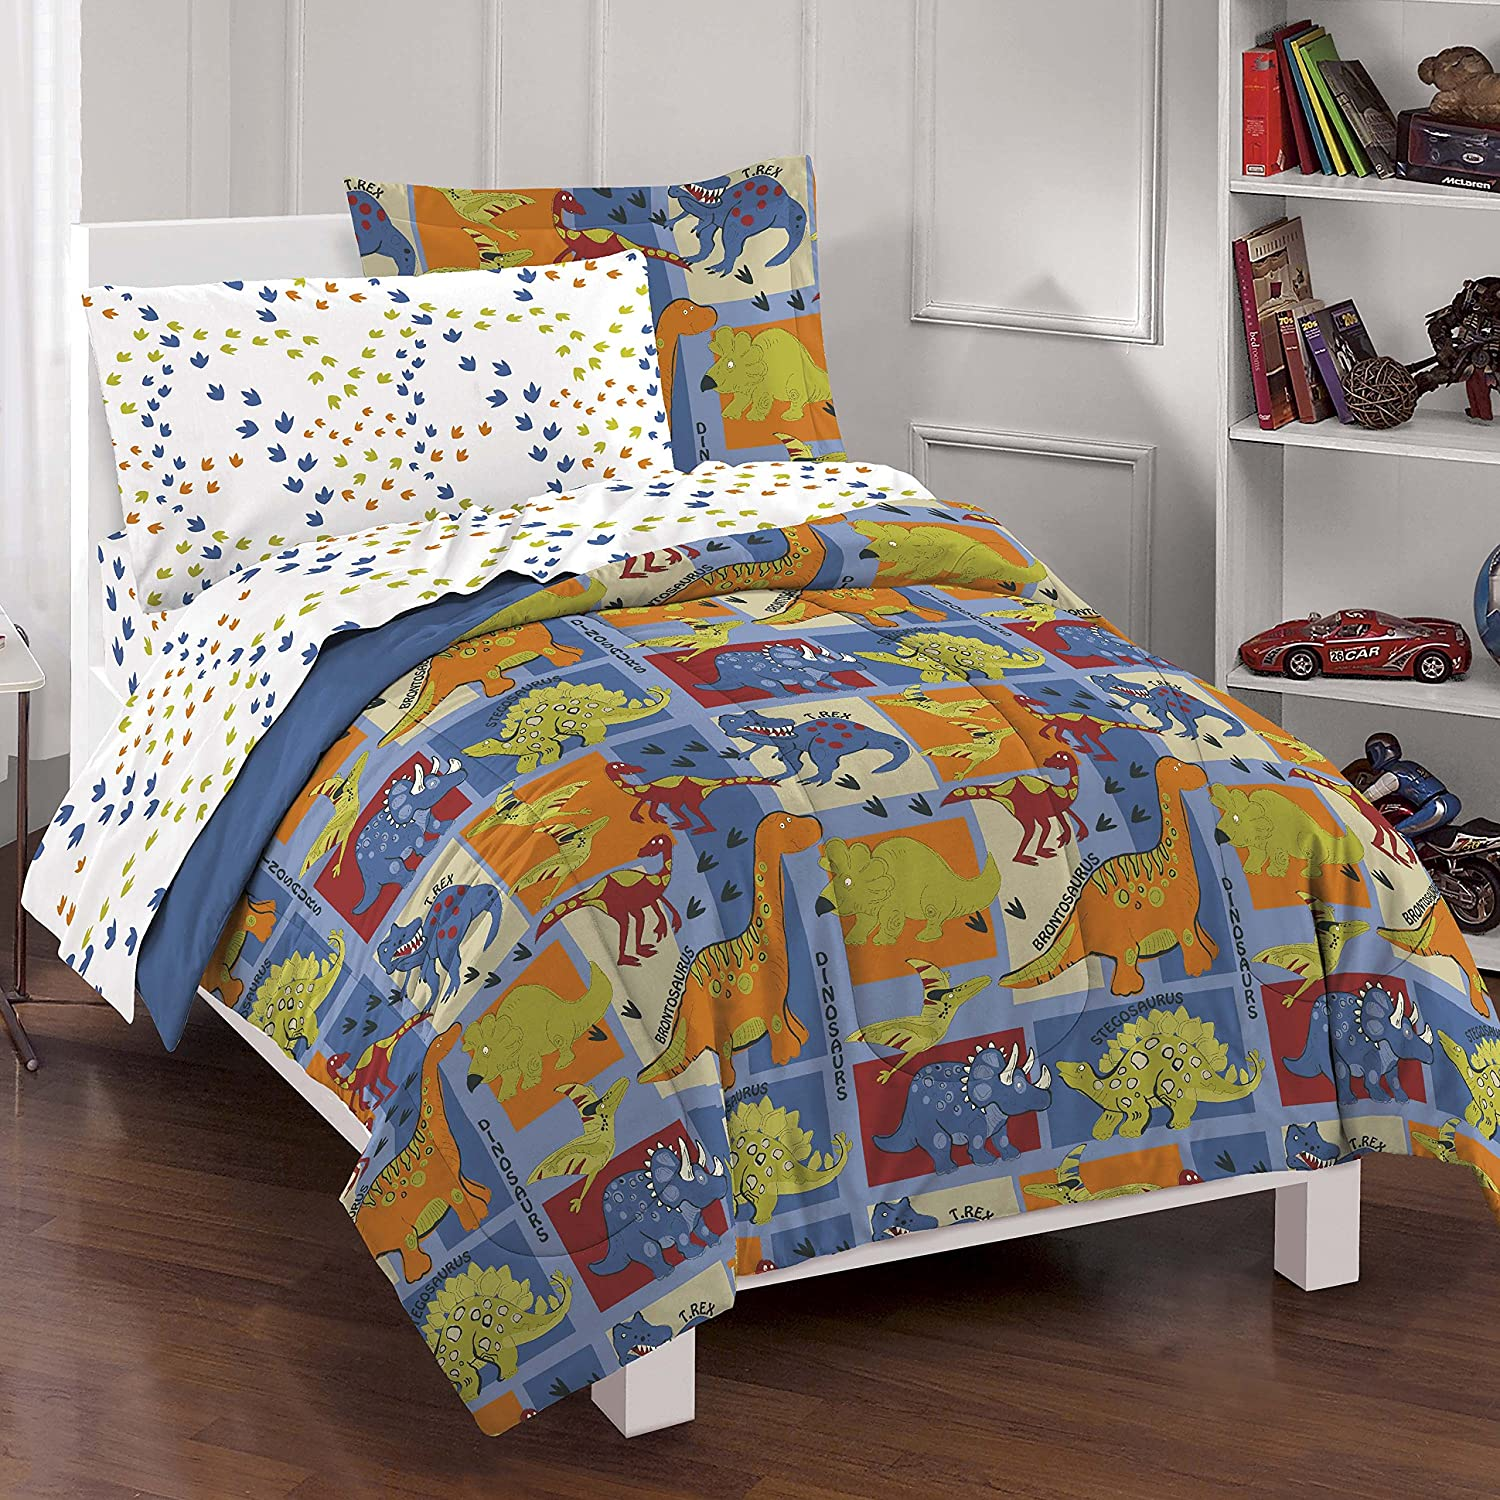 sets casual kitchen com multicolor set factory full dream dp home comforter amazon hearts rainbow oyahanl